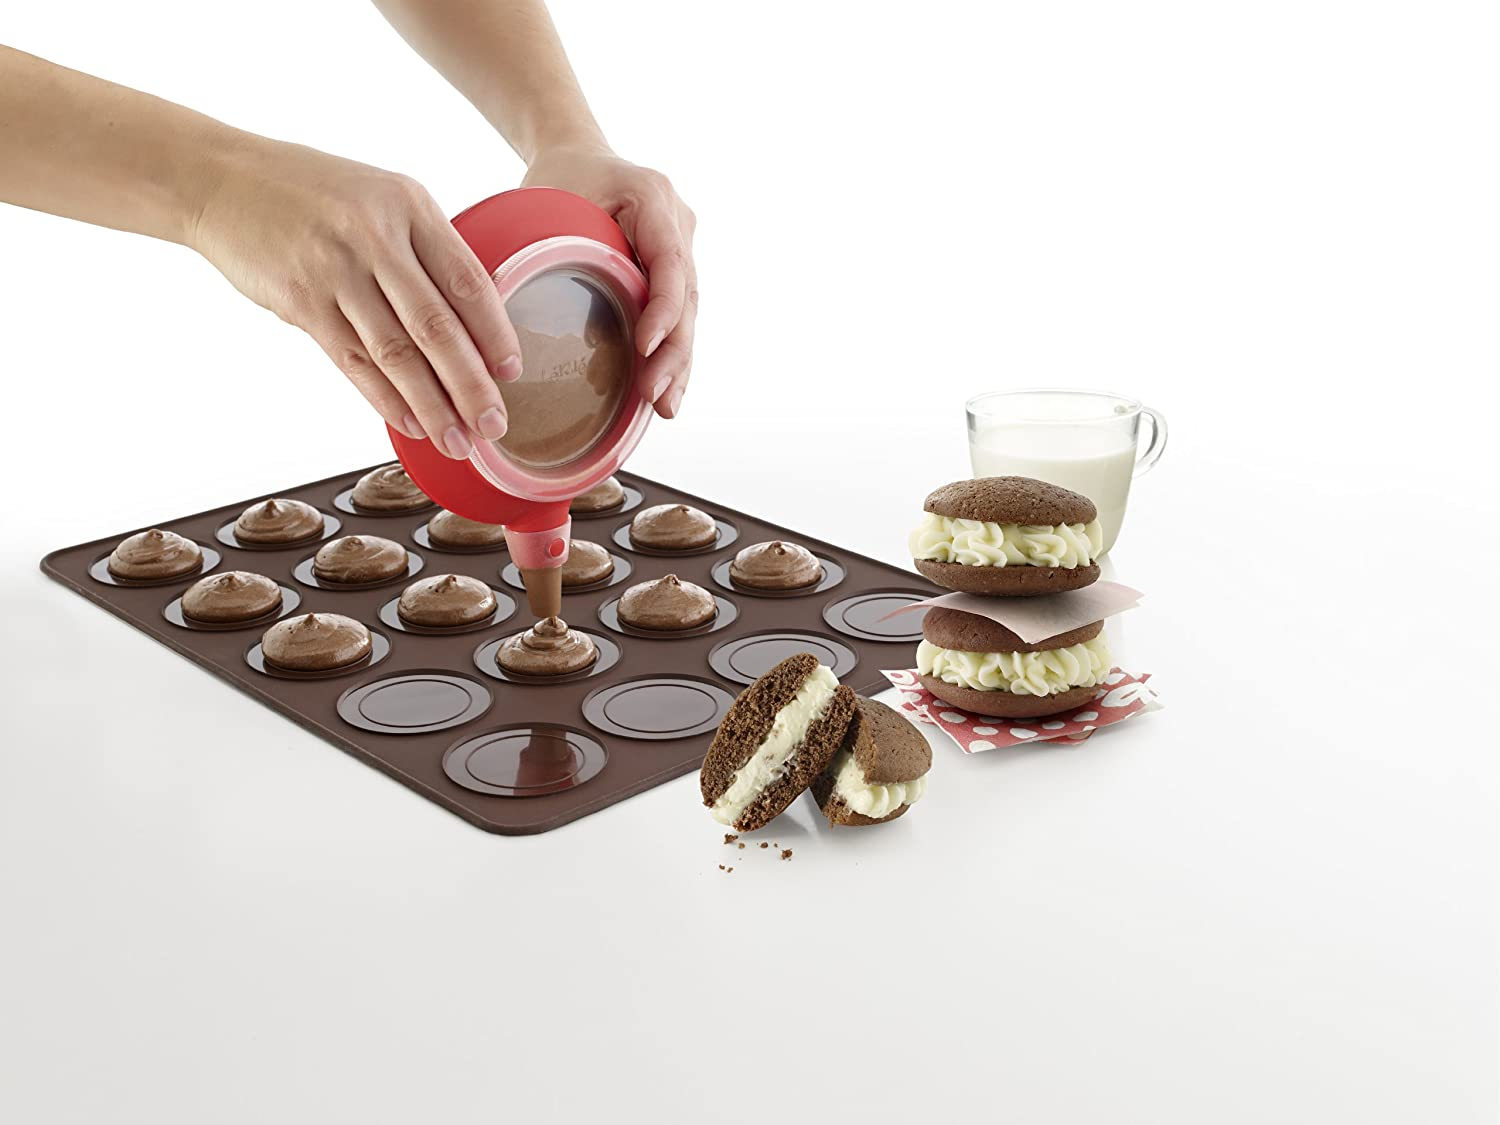 Lékué Whoopie Pie Kit with Decomax and Mat, Brown 3000002SURM017